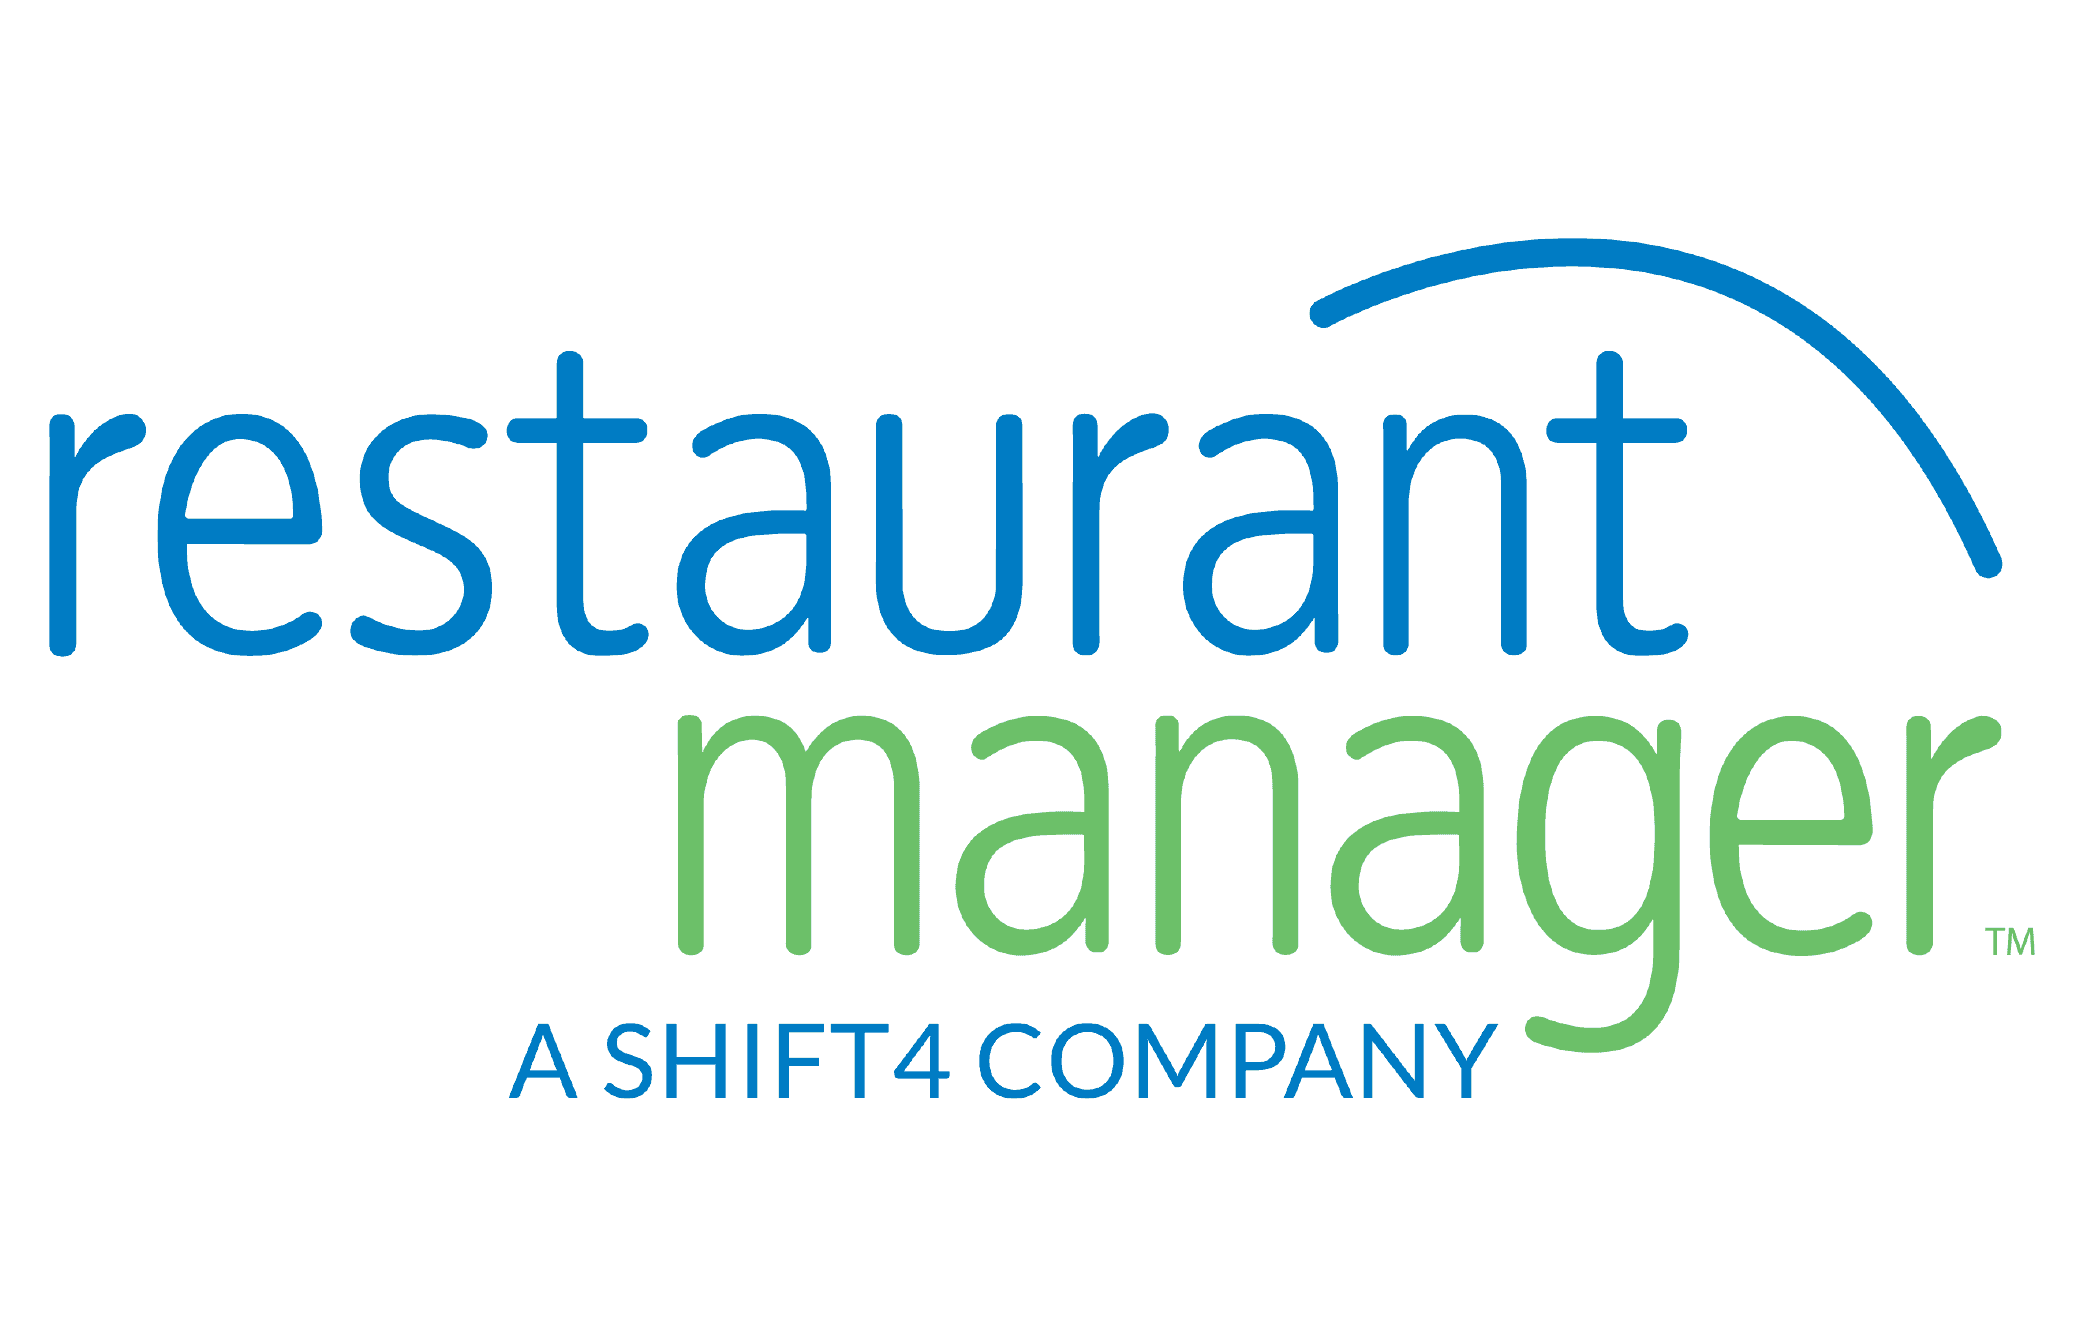 PointofSale 2019 Restaurant Manager Reseller Conference delivers new products, exciting announcements & record attendance